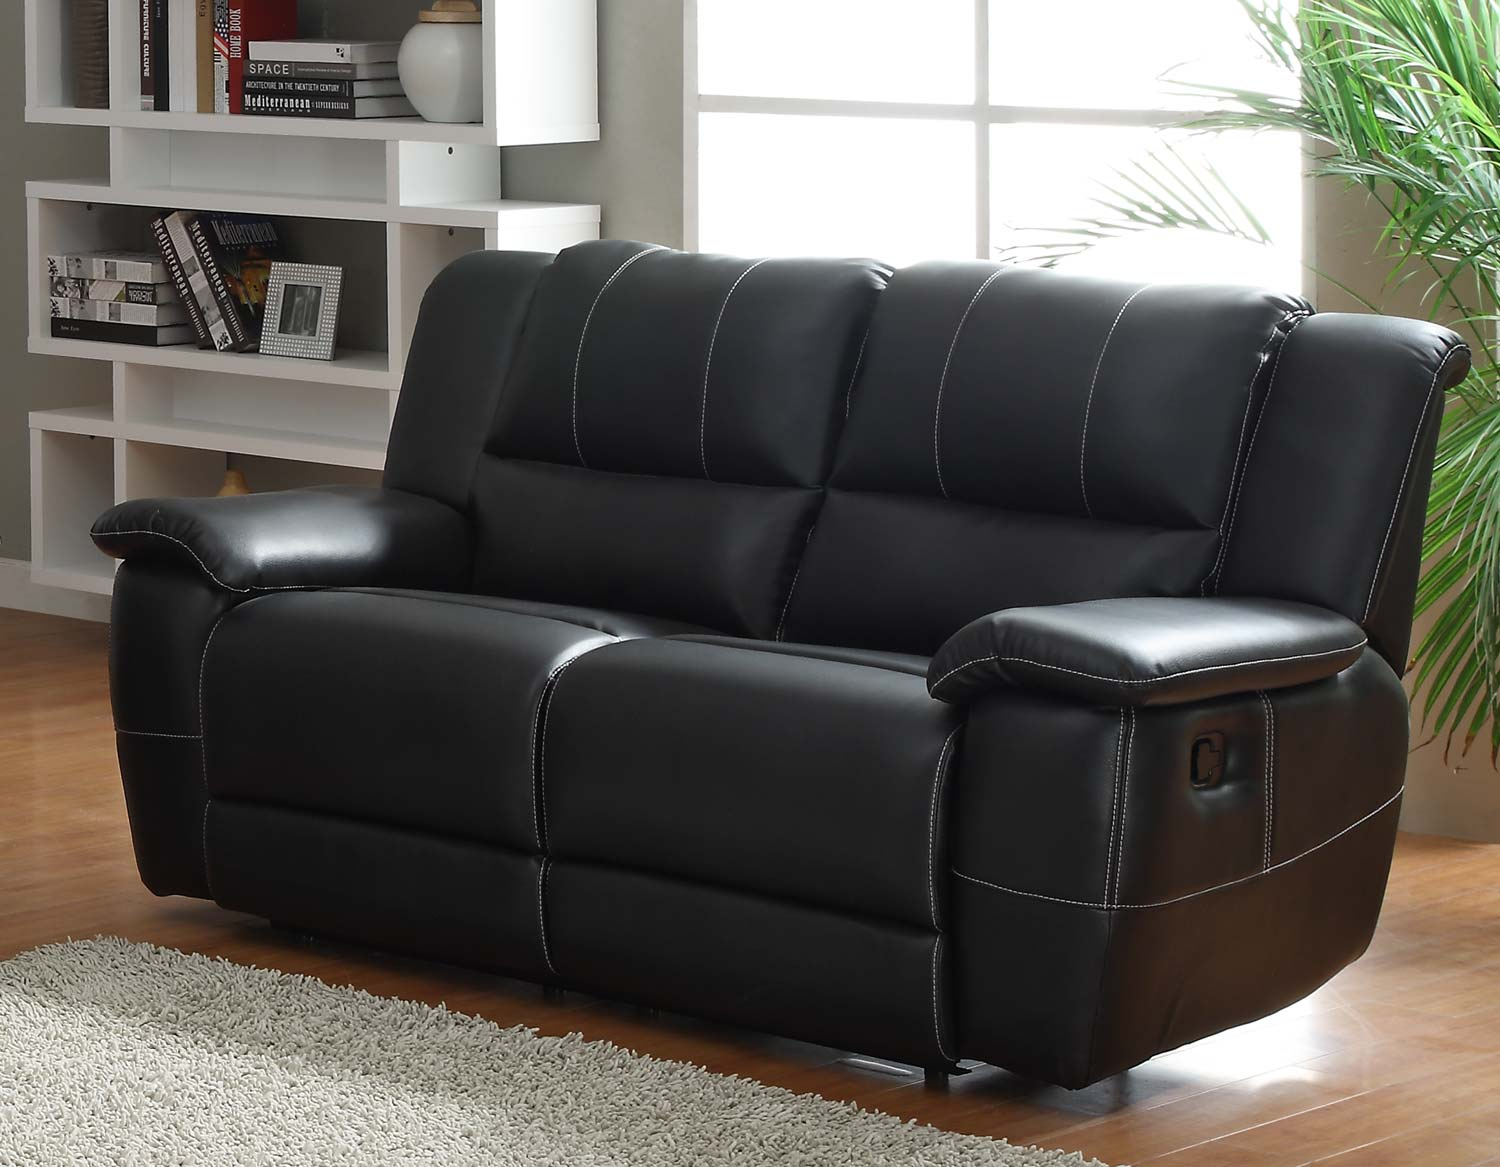 Homelegance cantrell reclining sofa set black bonded Reclining leather sofa and loveseat